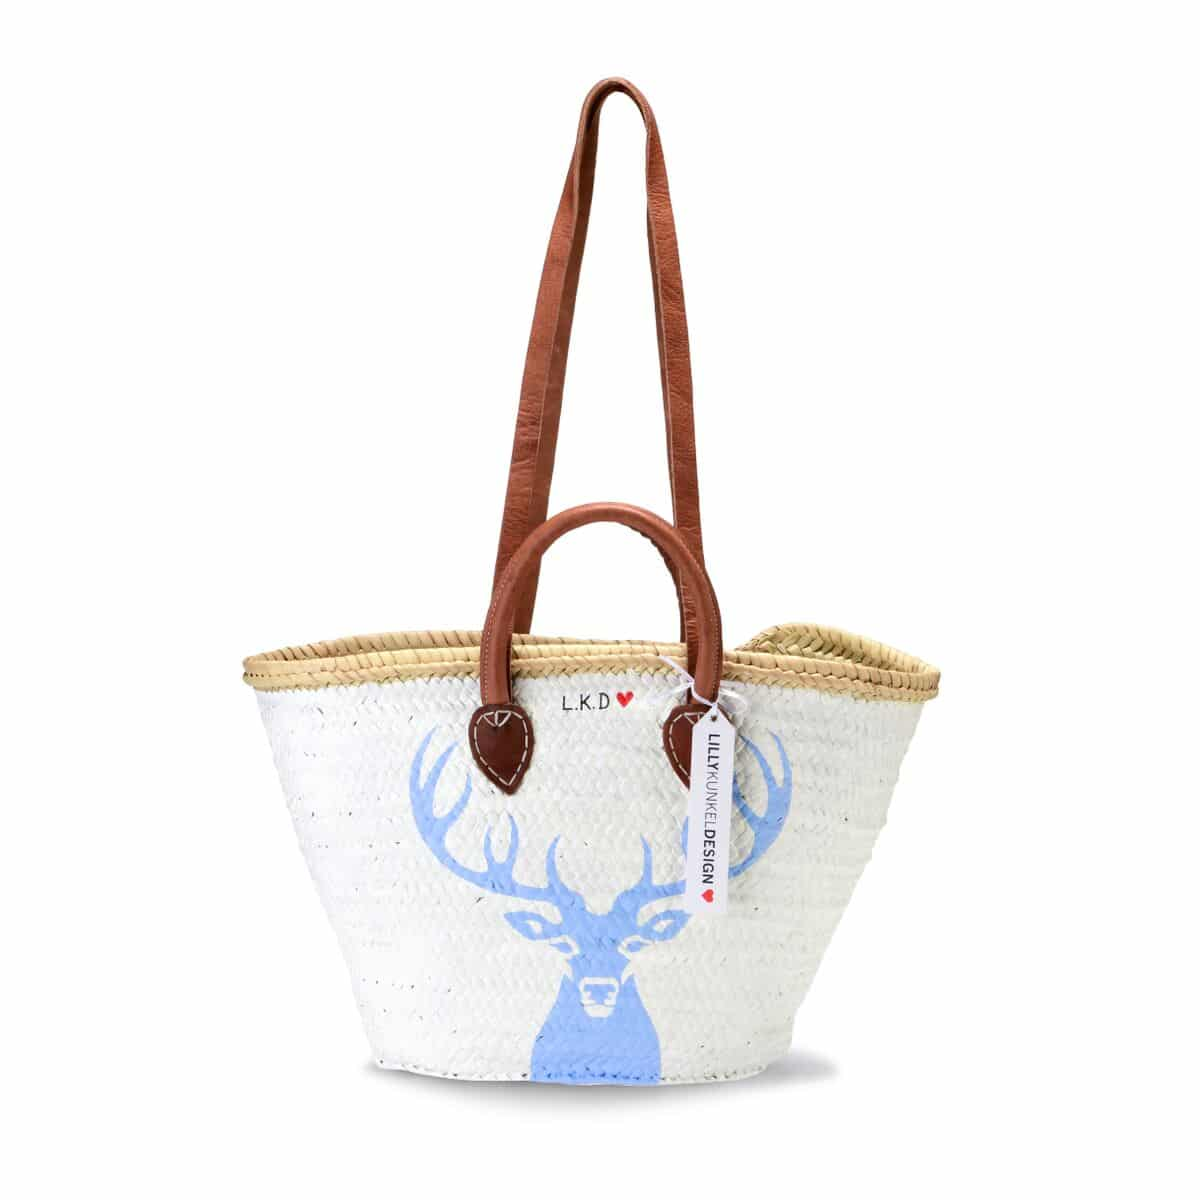 LKD_Oh_Deer_Blau_189EUR_preview